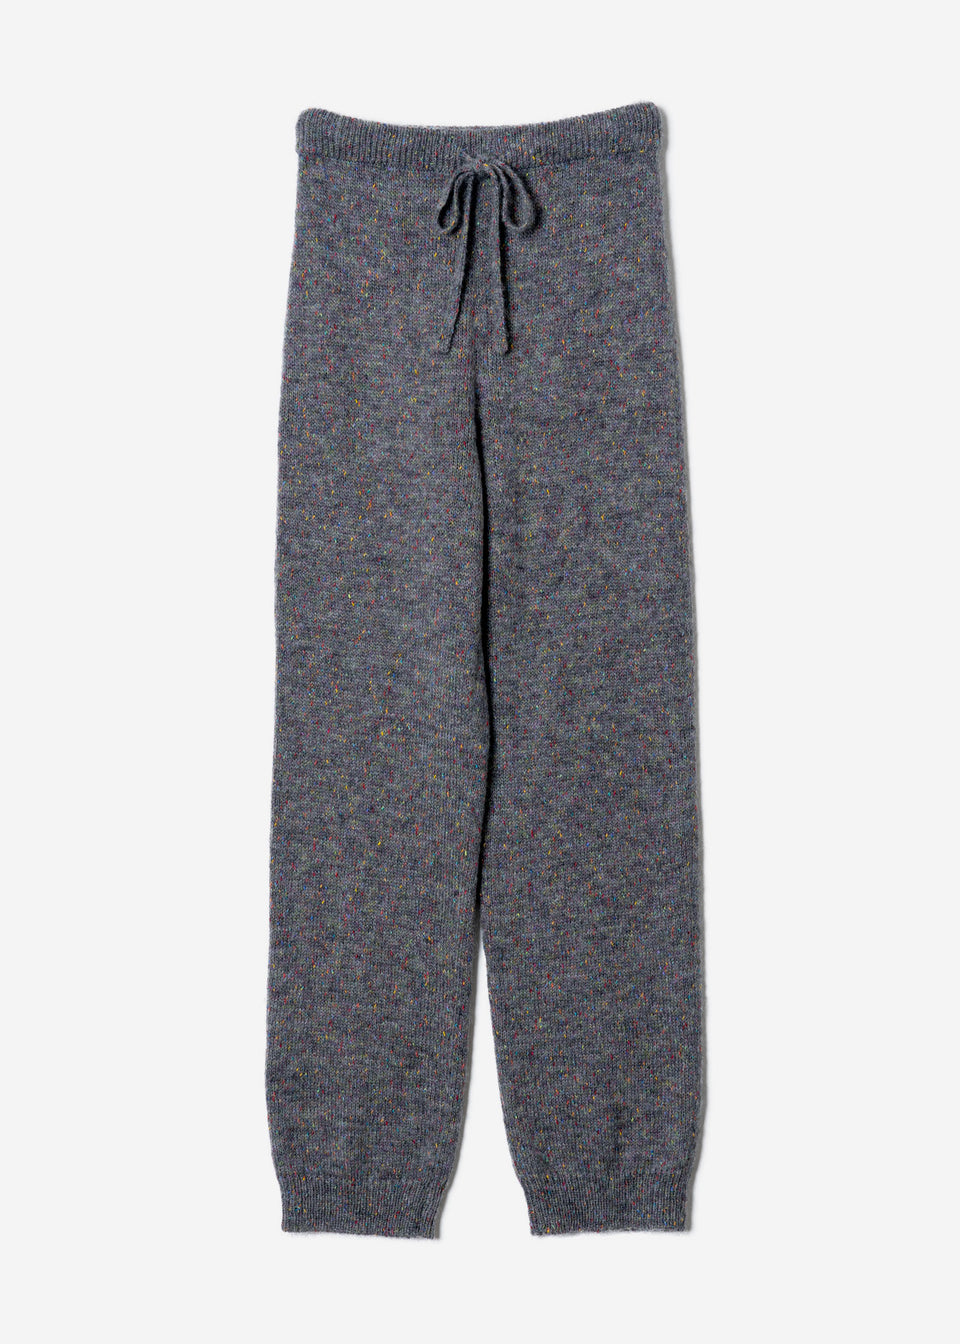 Splash Nep Knit Pants in Gray Mix